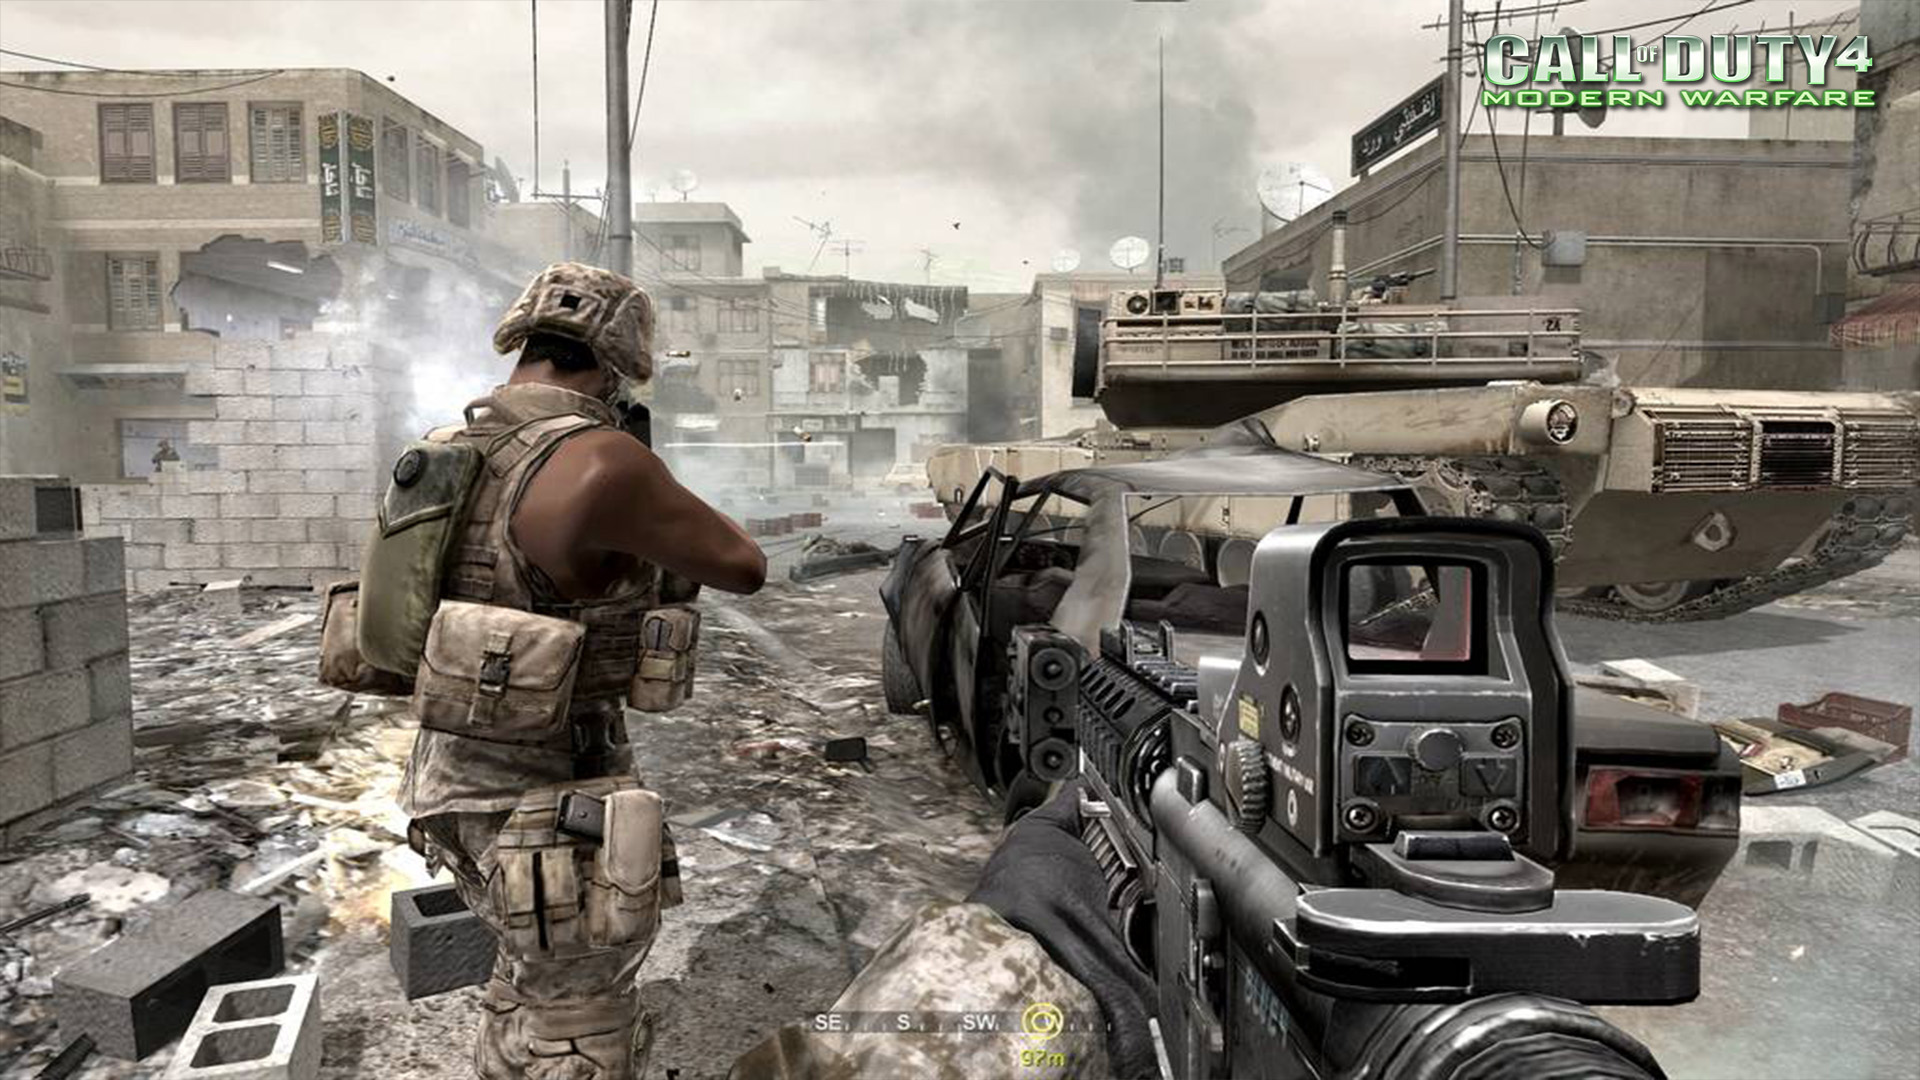 Call Of Duty 4: Modern Warfare Image - ID: 16257 - Image Abyss